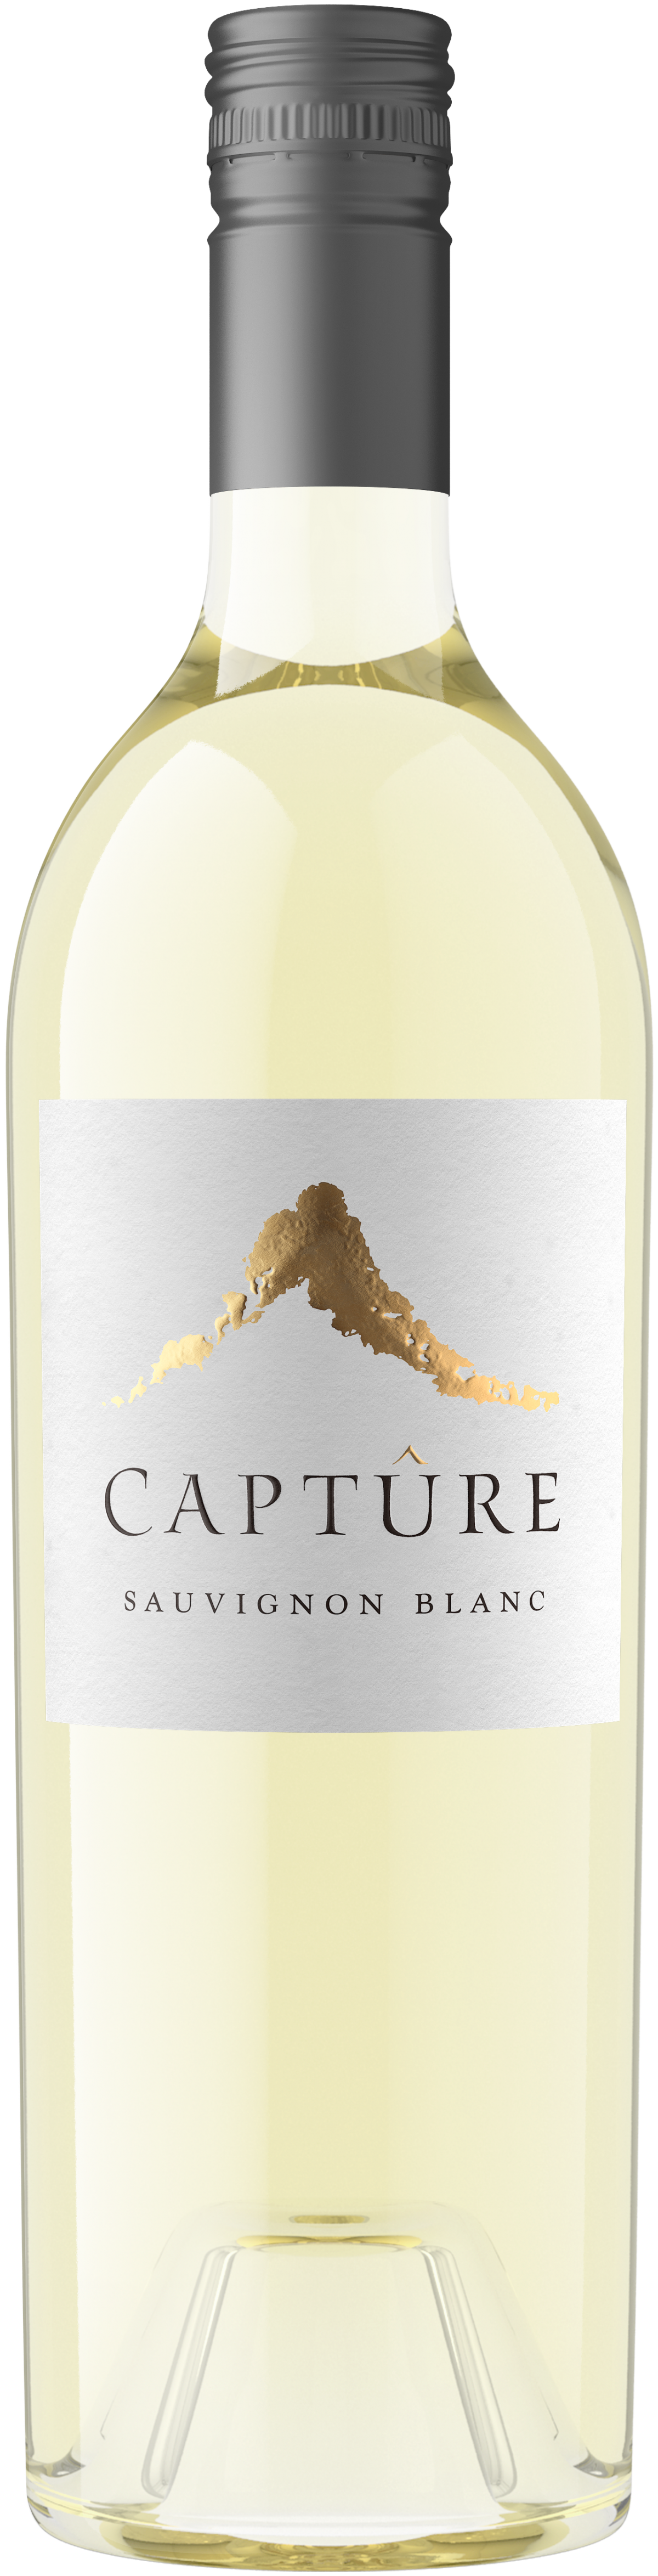 Sauvignon Blanc wine bottle